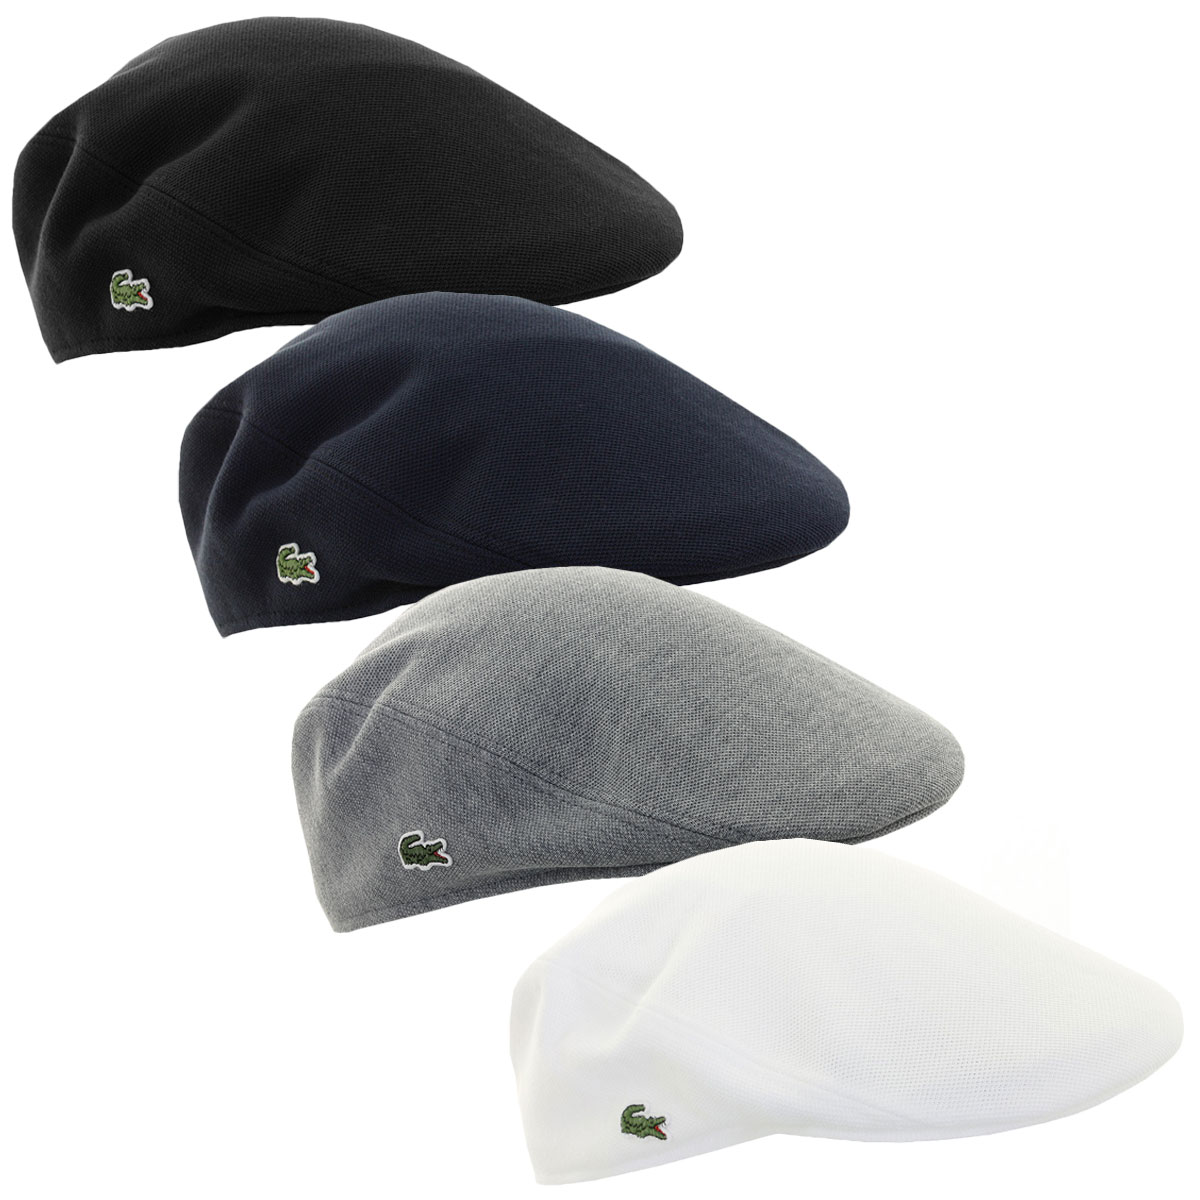 9f2594da3373b Details about Lacoste Mens RK0345 Cotton Pique Flat Golf Cap Traditional